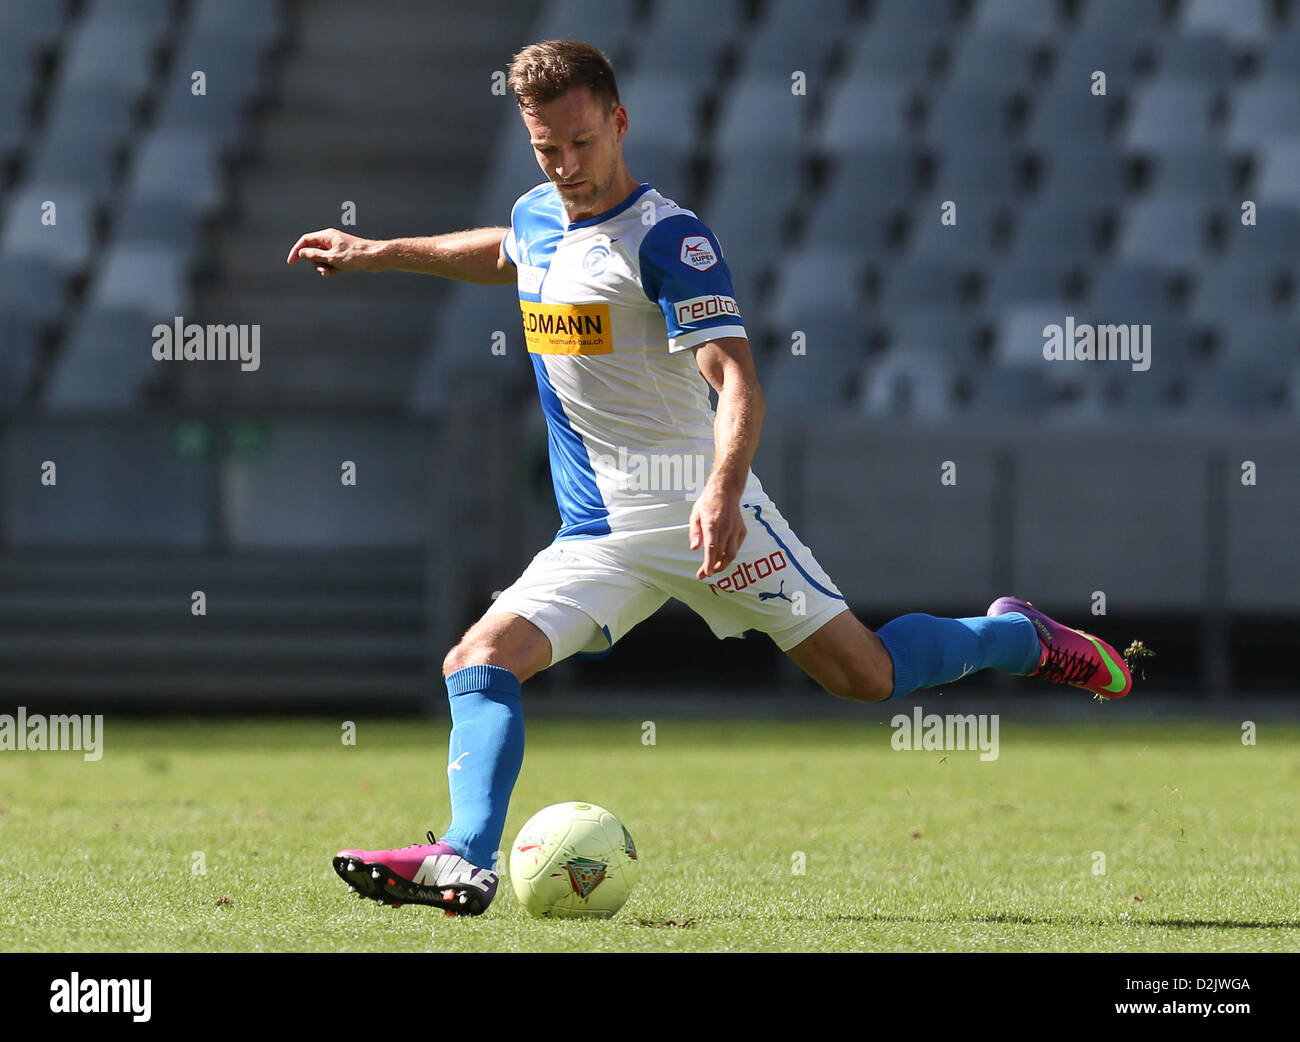 CAPE TOWN, South Africa - Saturday 26 January 2013, Daniel Pavlovic of Grasshopper Club Zurich during the soccer/football - Stock Image